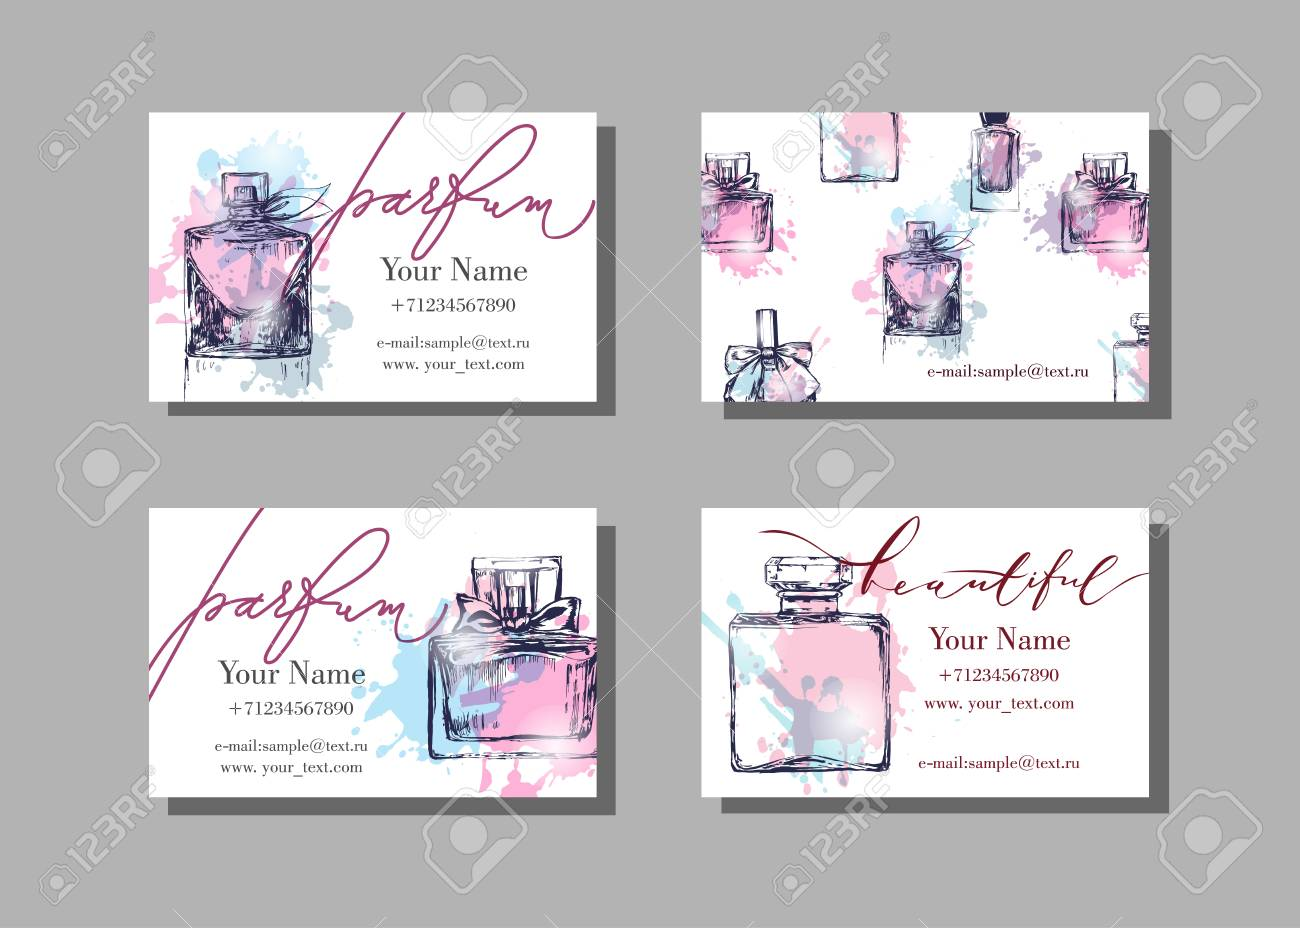 Makeup artist business card vector template with beautiful perfume makeup artist business card vector template with beautiful perfume bottle fashion and beauty background reheart Gallery